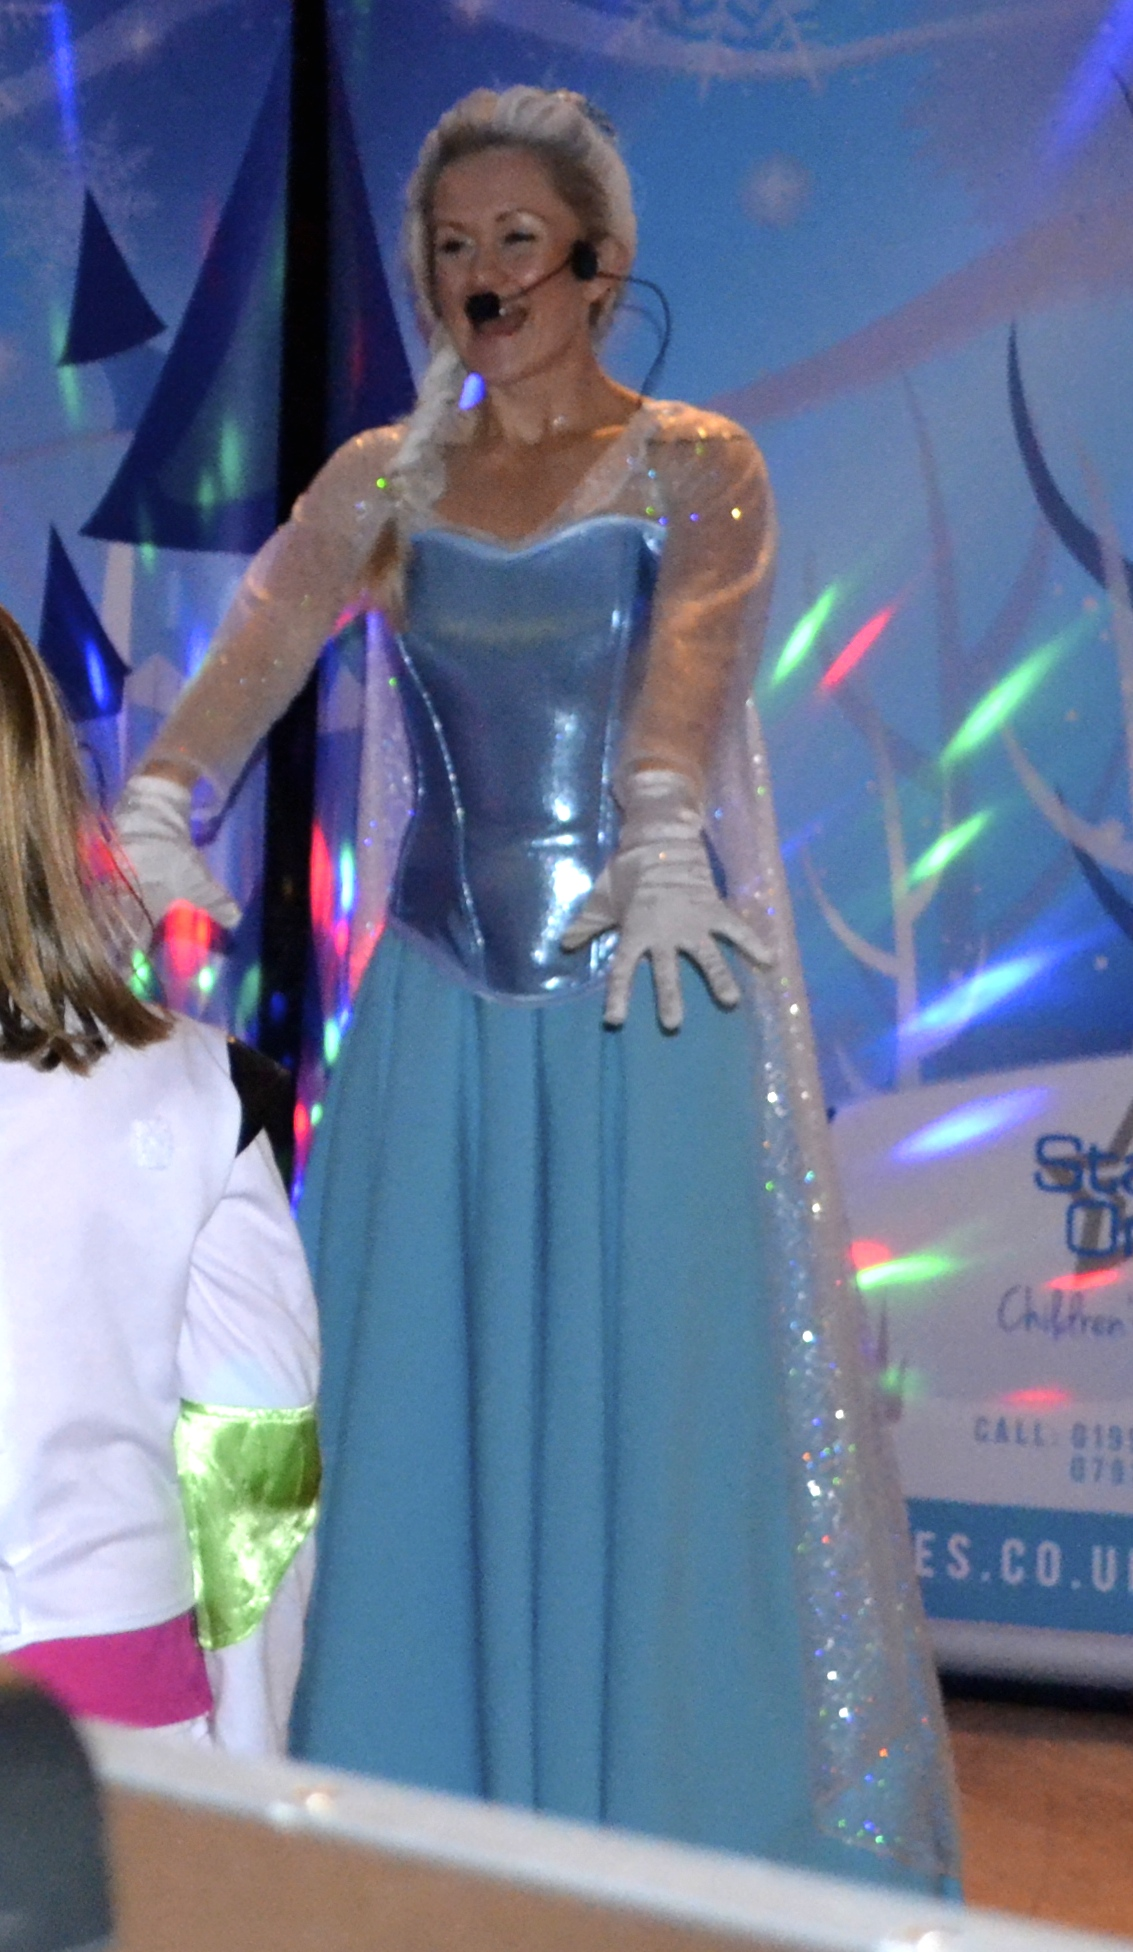 Elsa dancing at the Ball